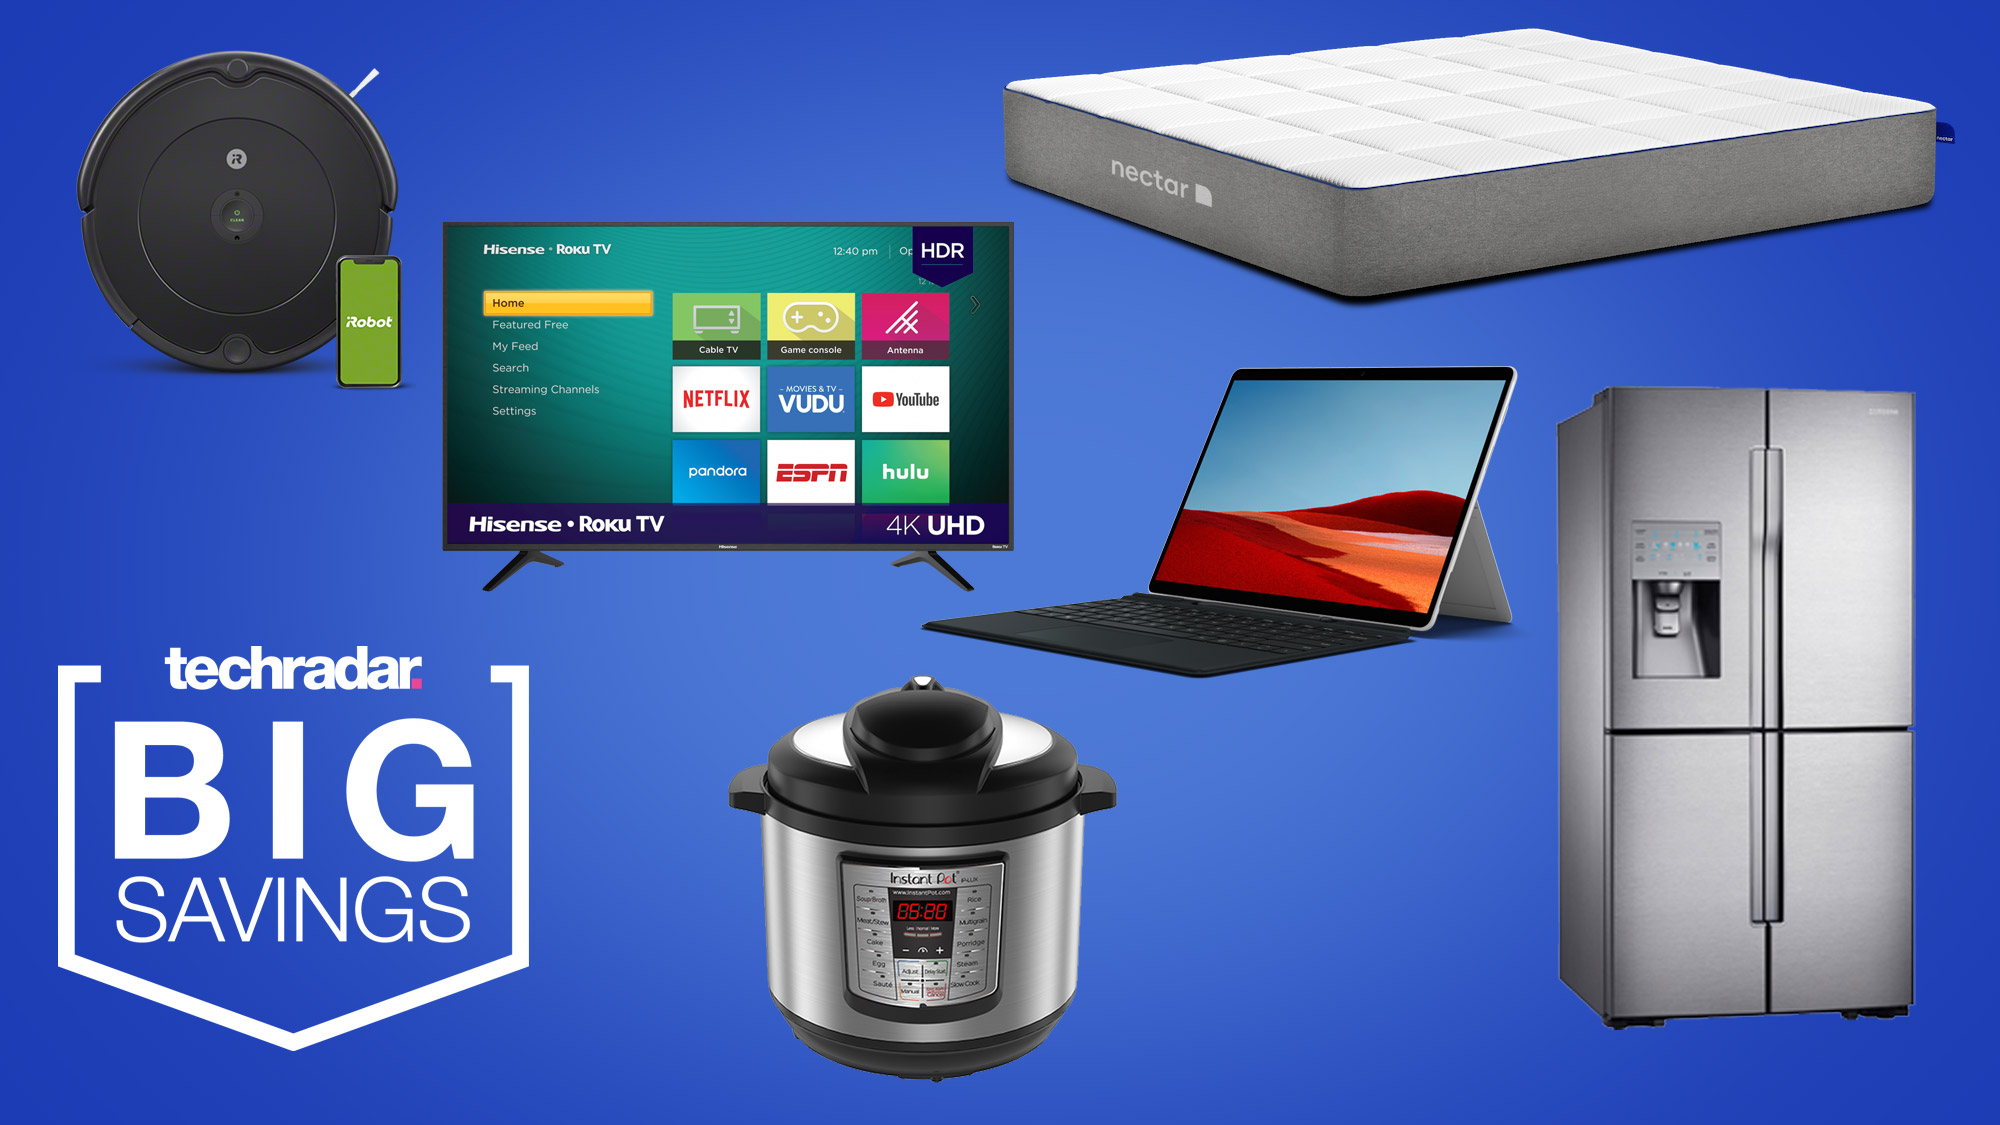 Presidents Day Sales And Deals Extended Home Depot Best Buy Lowe S Walmart And More Techradar